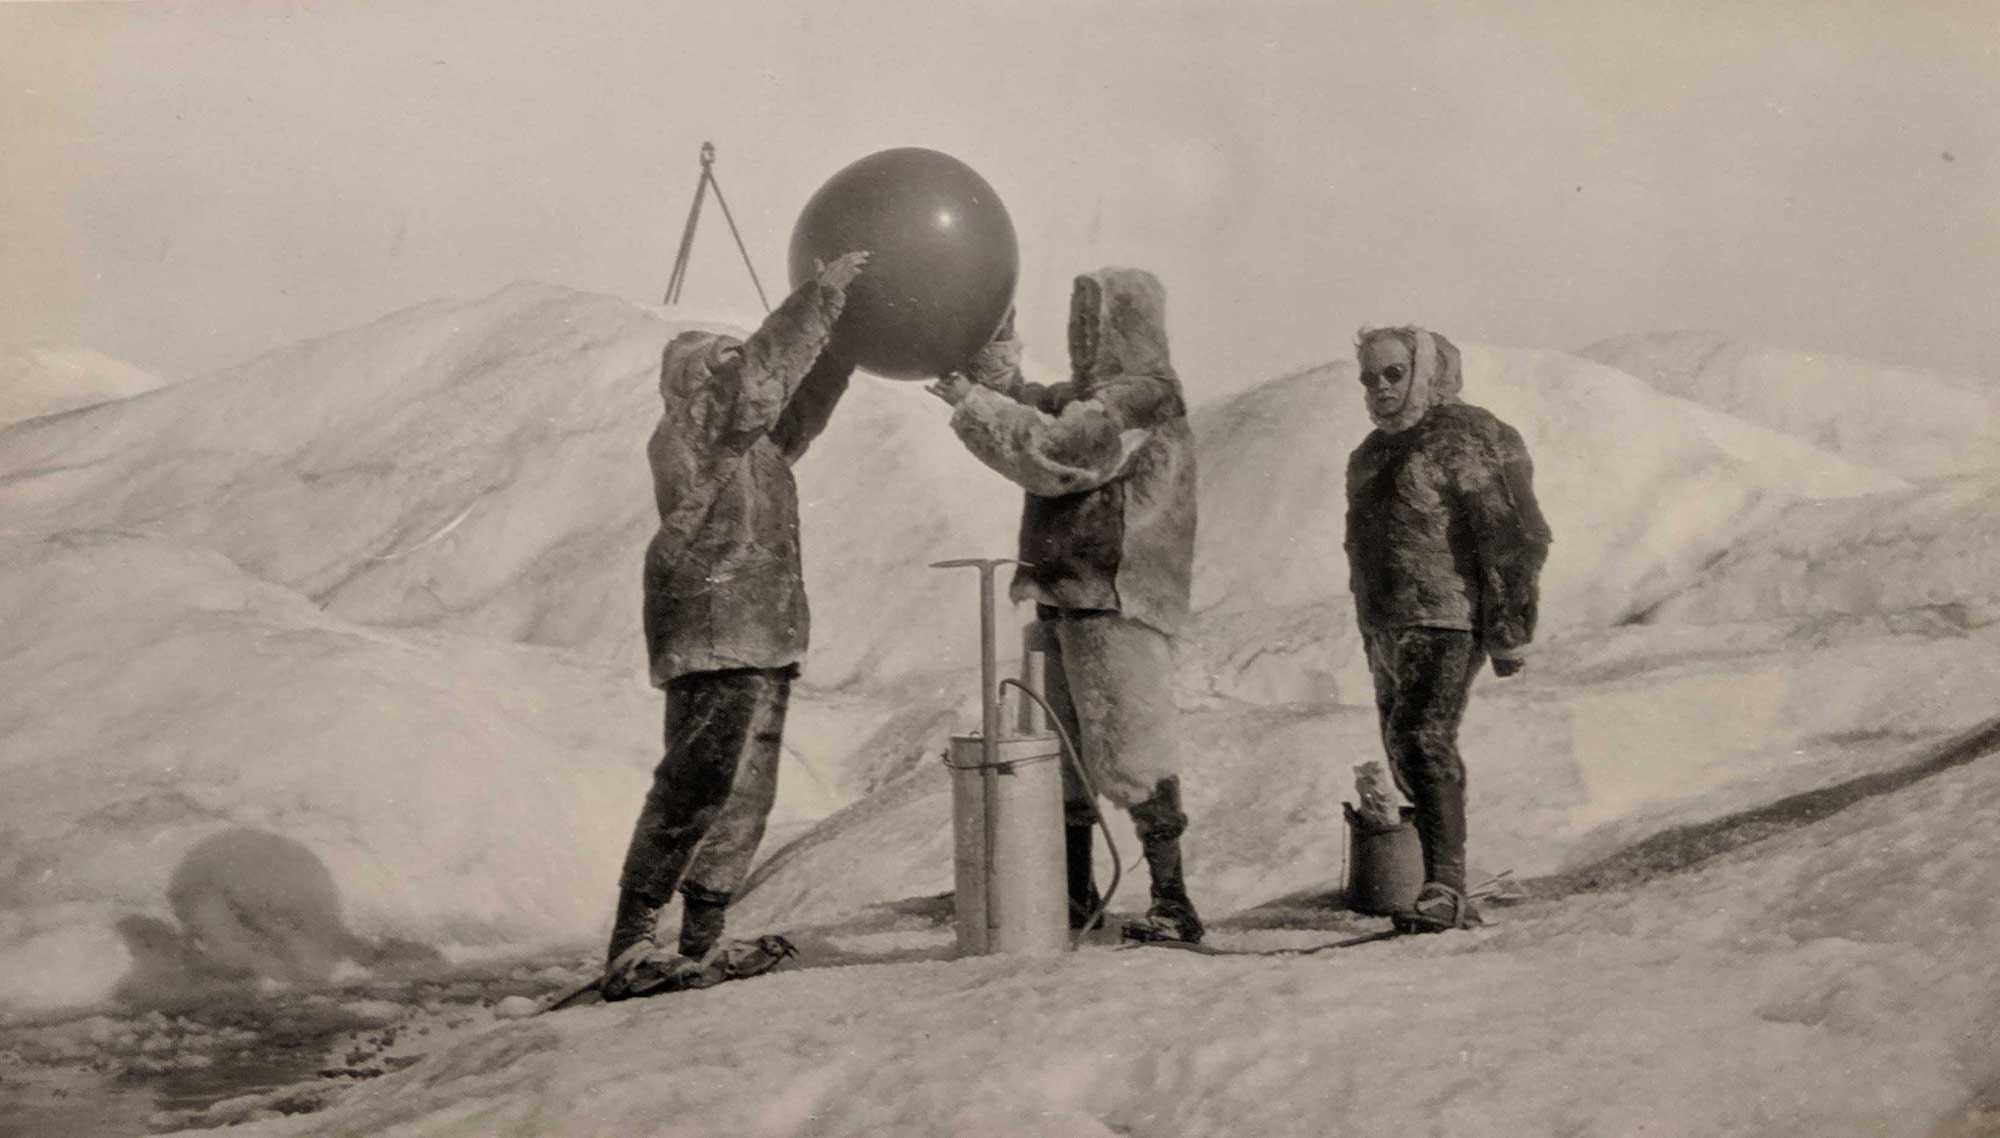 Launching balloon with instrument. Greenland, 1926.